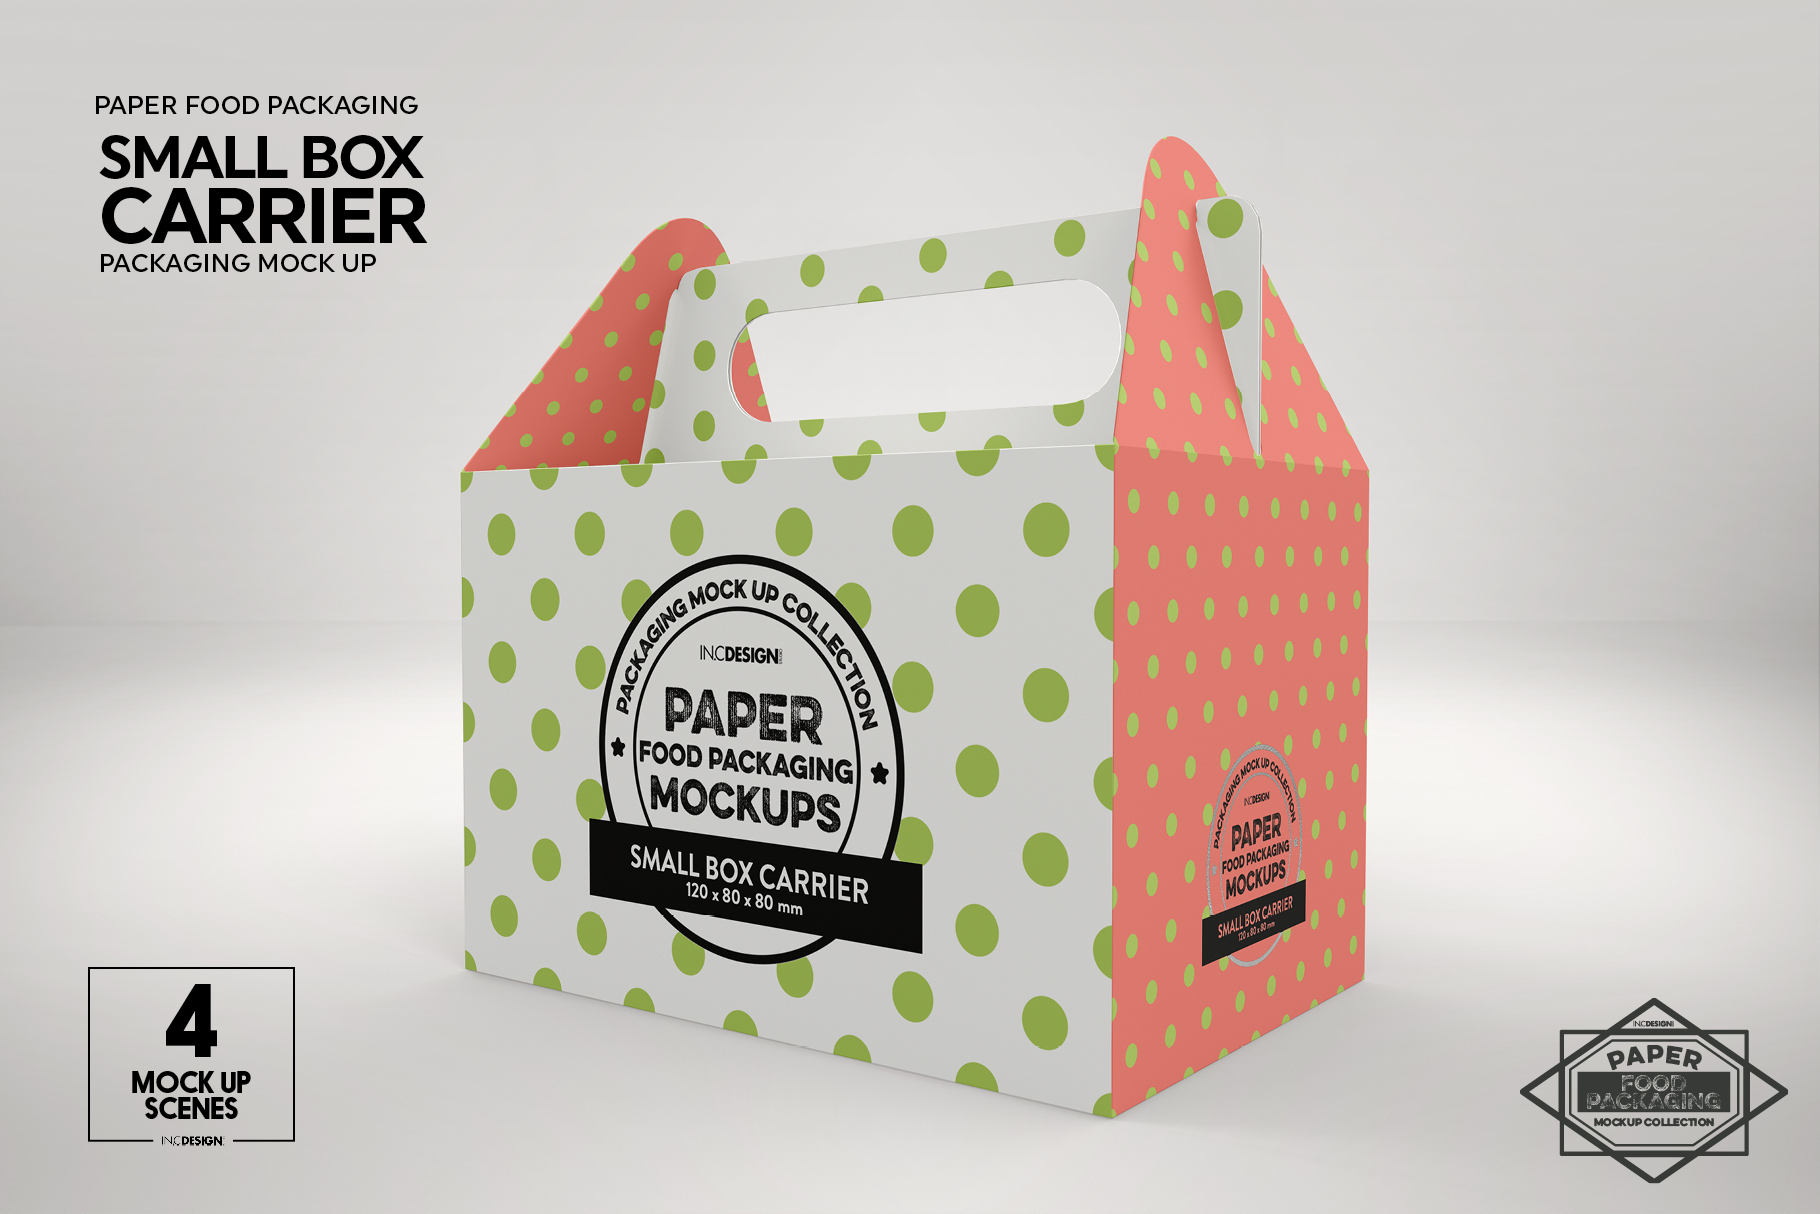 Small Cake Box Carrier Packaging Mockup example image 7